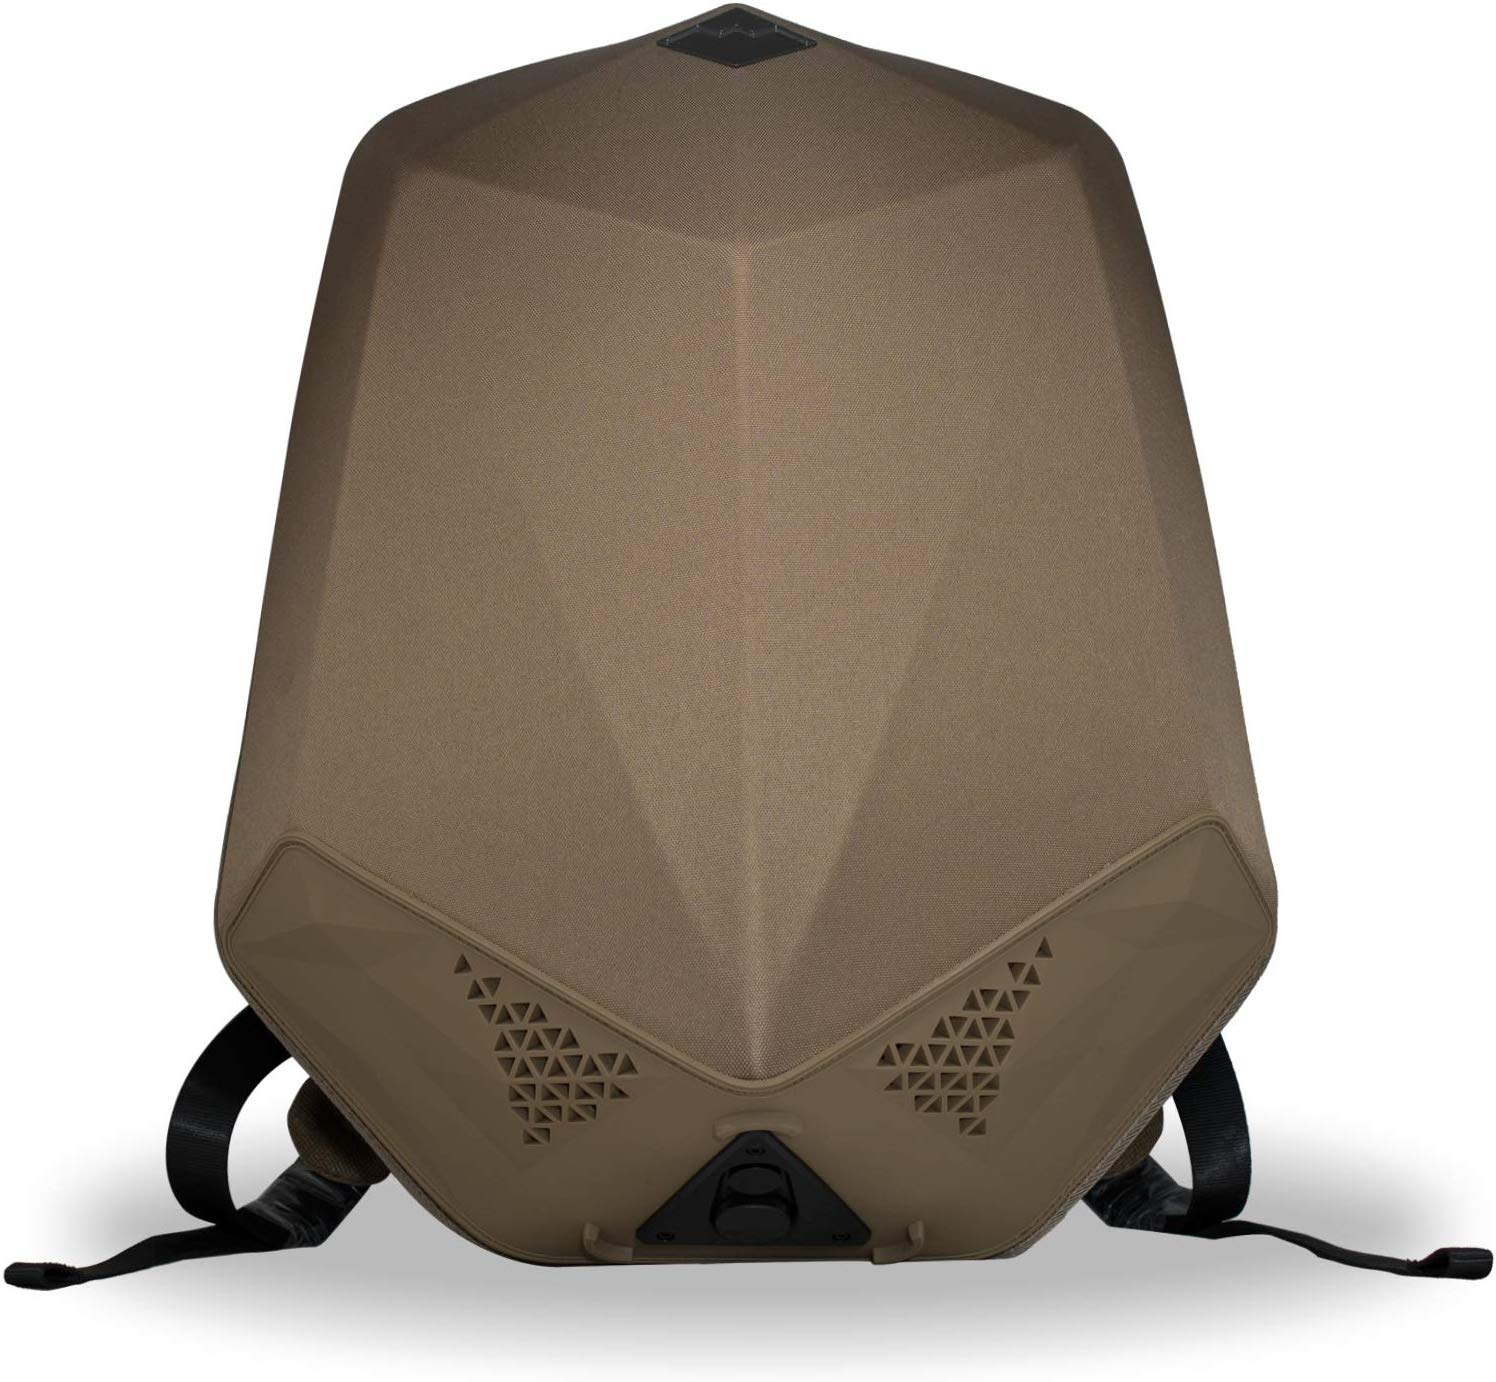 Best Speaker Backpacks On The Market In 2020 - Reviews and ...